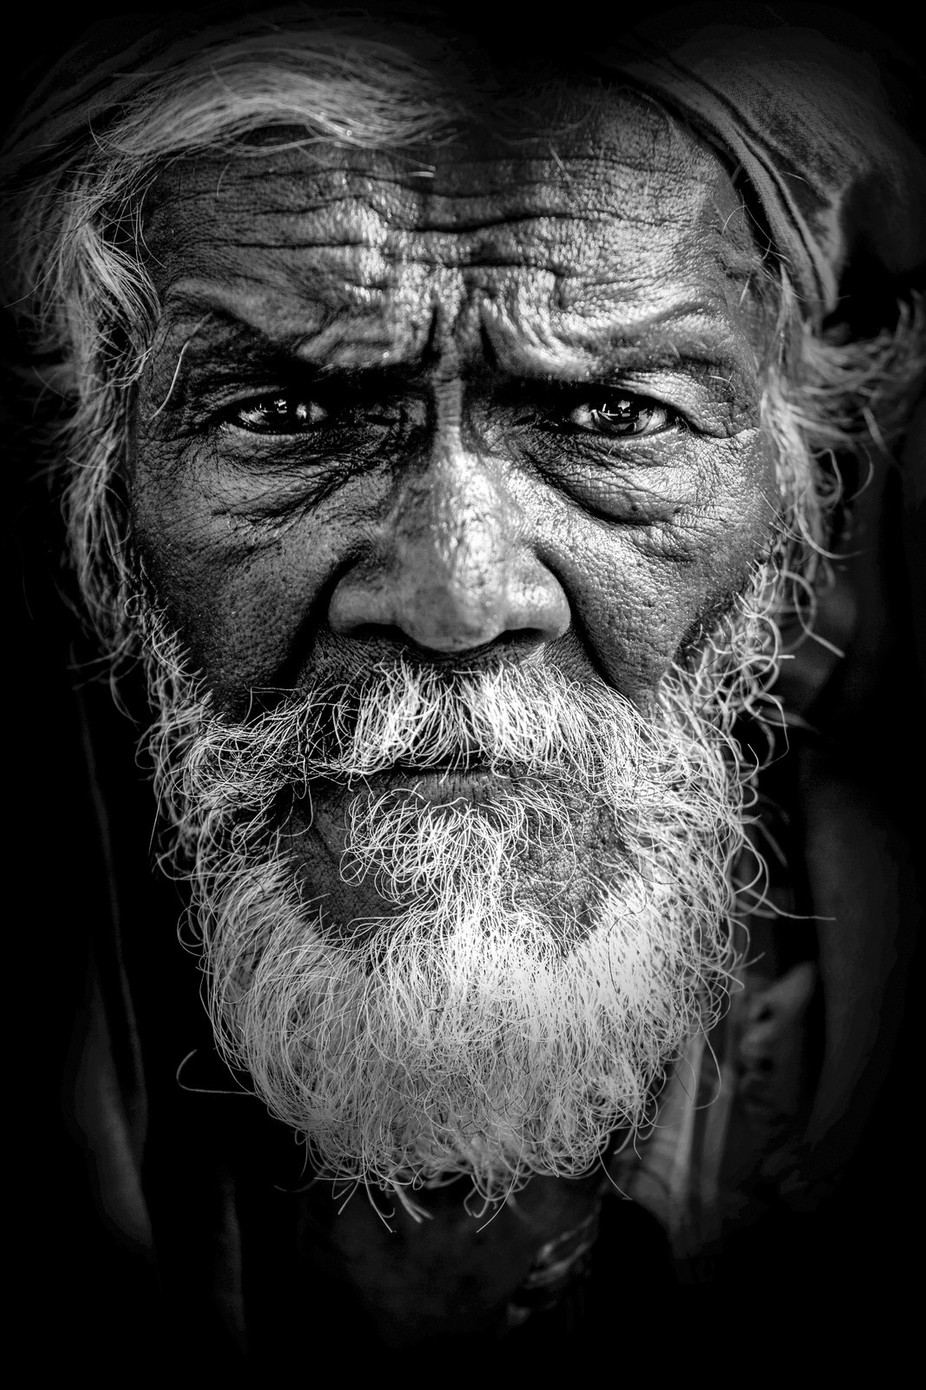 Indian Man by duncanheather - A World In Black And White Photo Contest